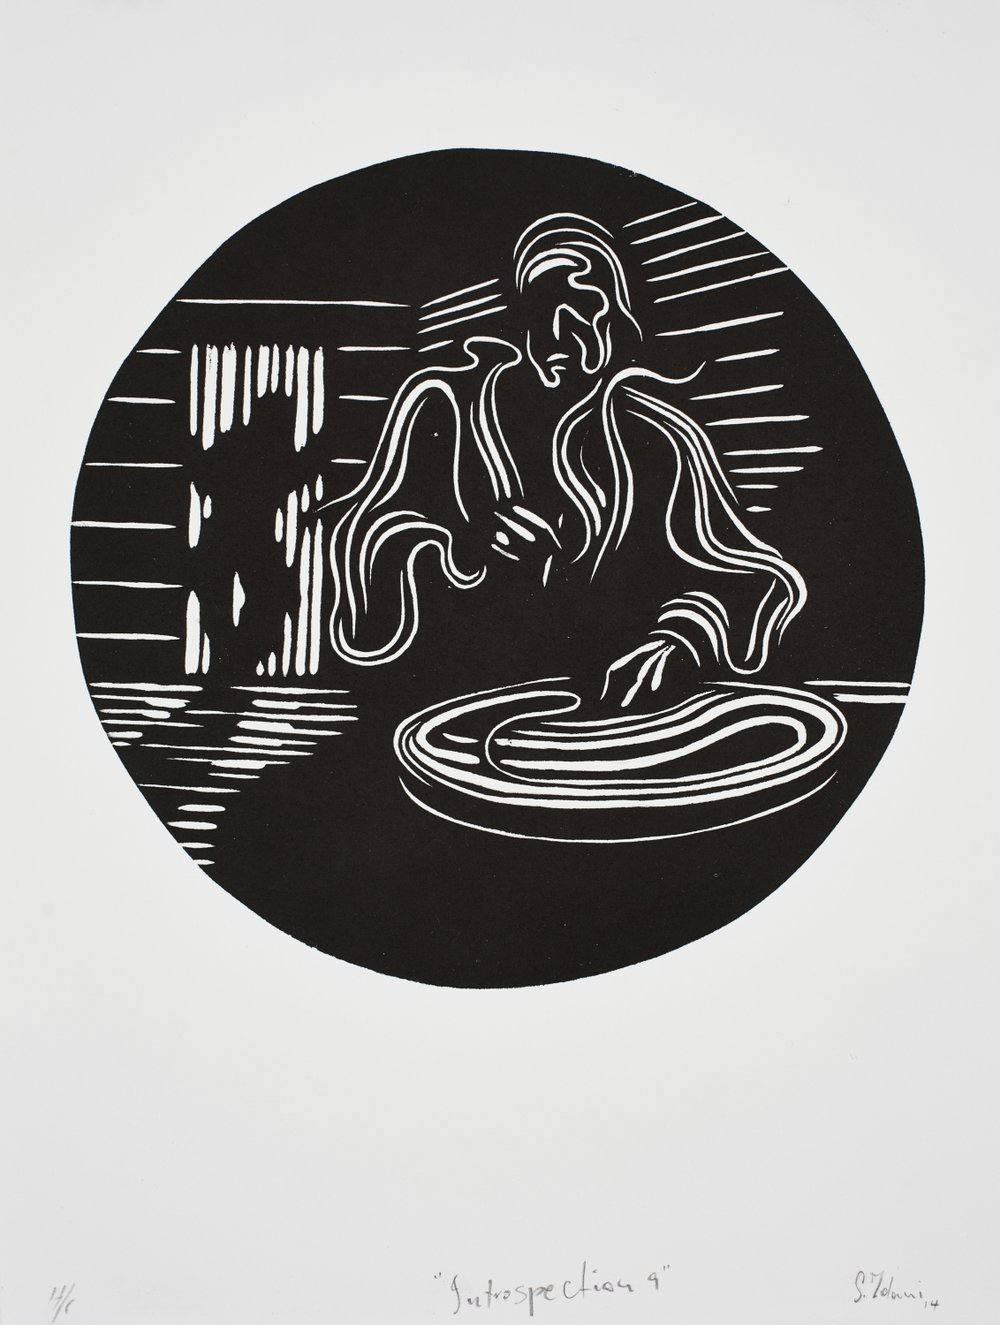 Introspection 9   Zolani Siphungela  Woodcut on paper  Edition of 44   R 3 200.00 excl. vat